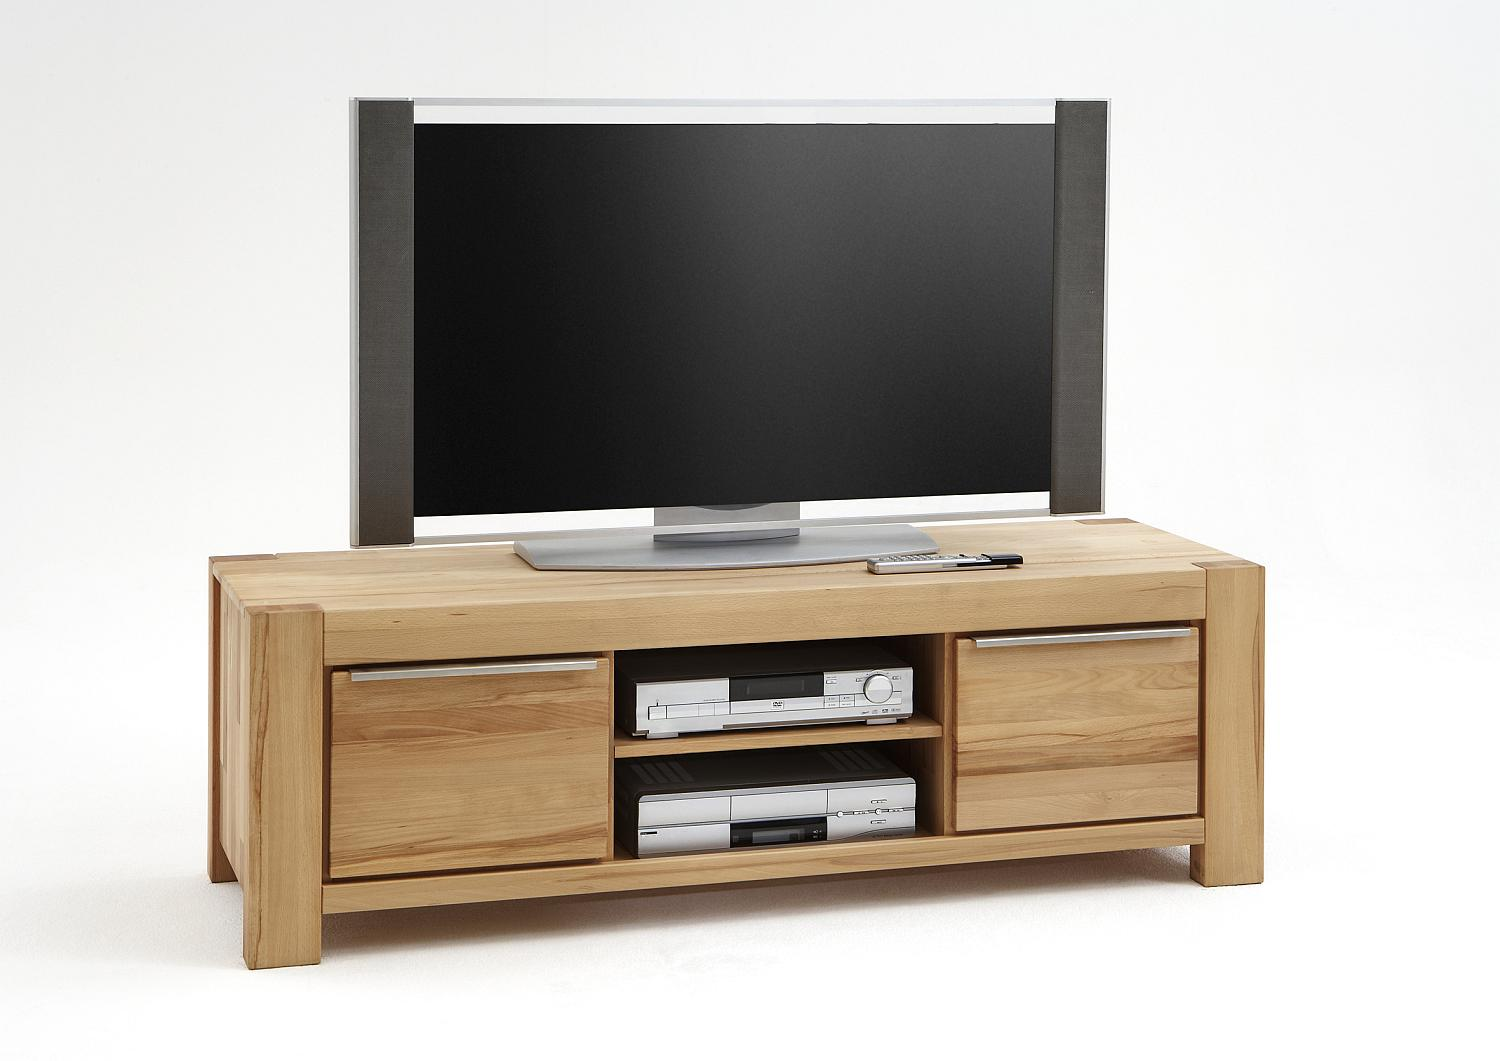 tvanrichte tvschrank fernsehschrank lowboard kernbuche. Black Bedroom Furniture Sets. Home Design Ideas